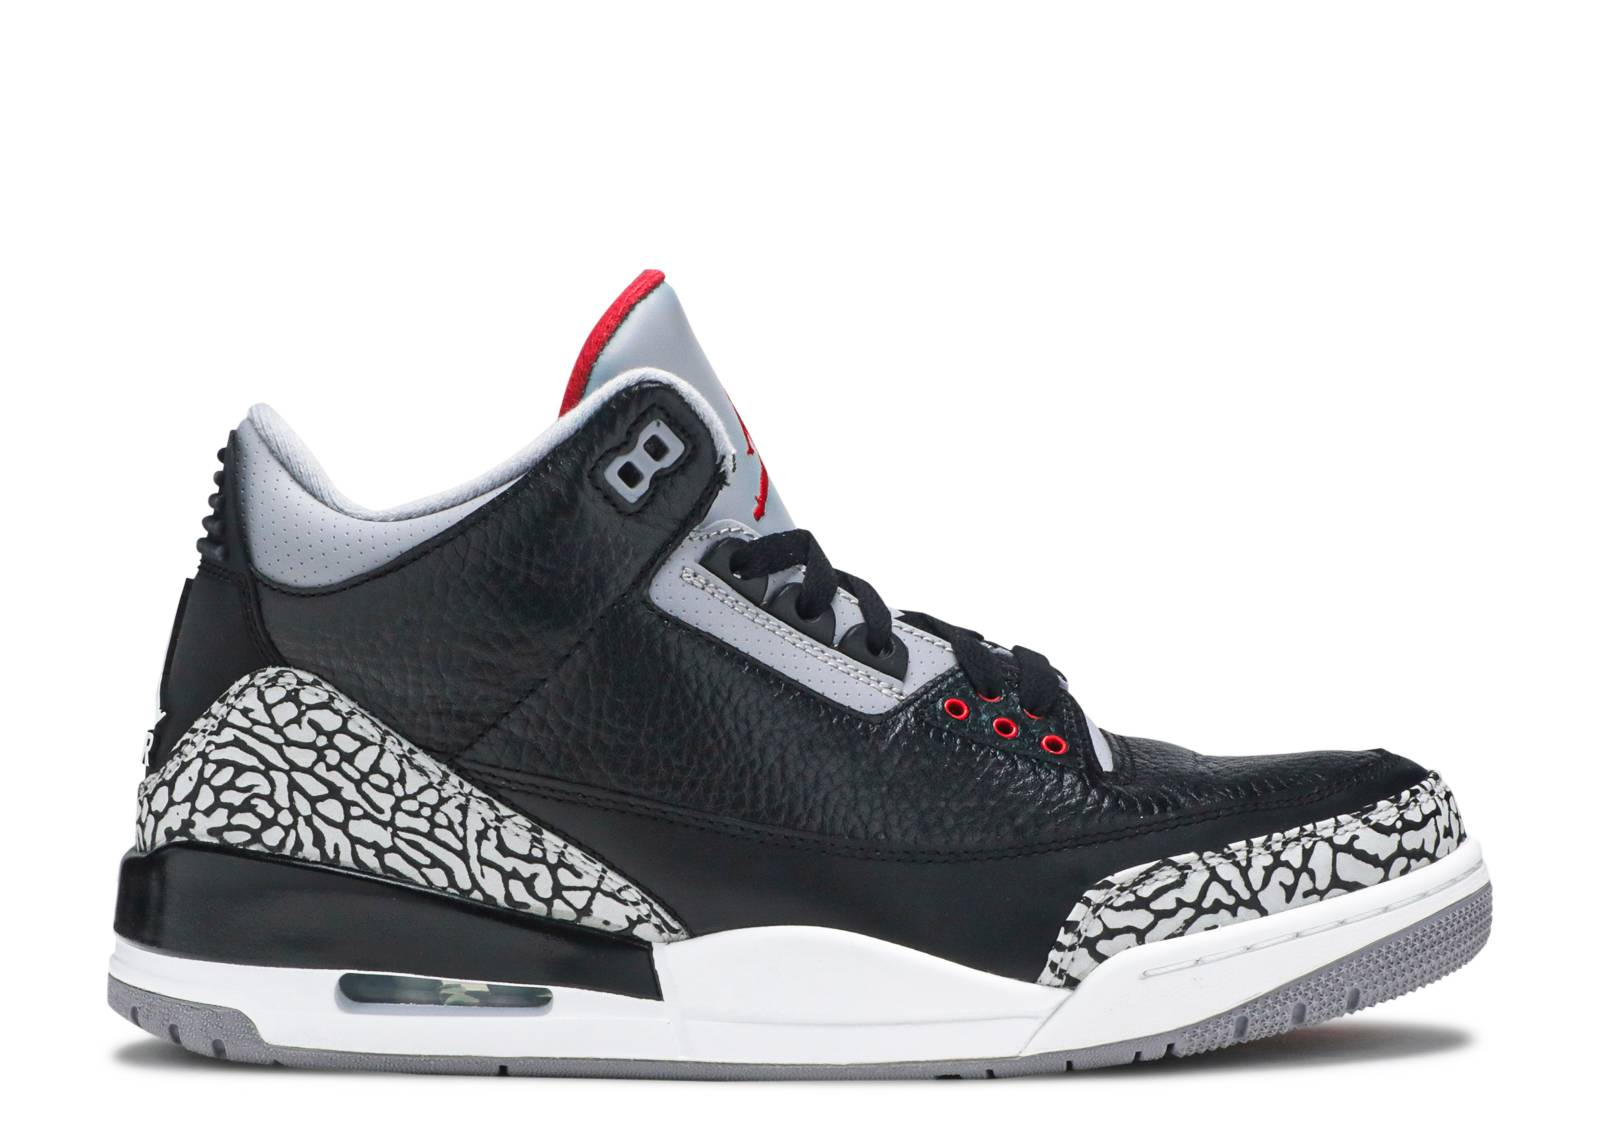 2011 Air Jordan 3 Ciment Noir